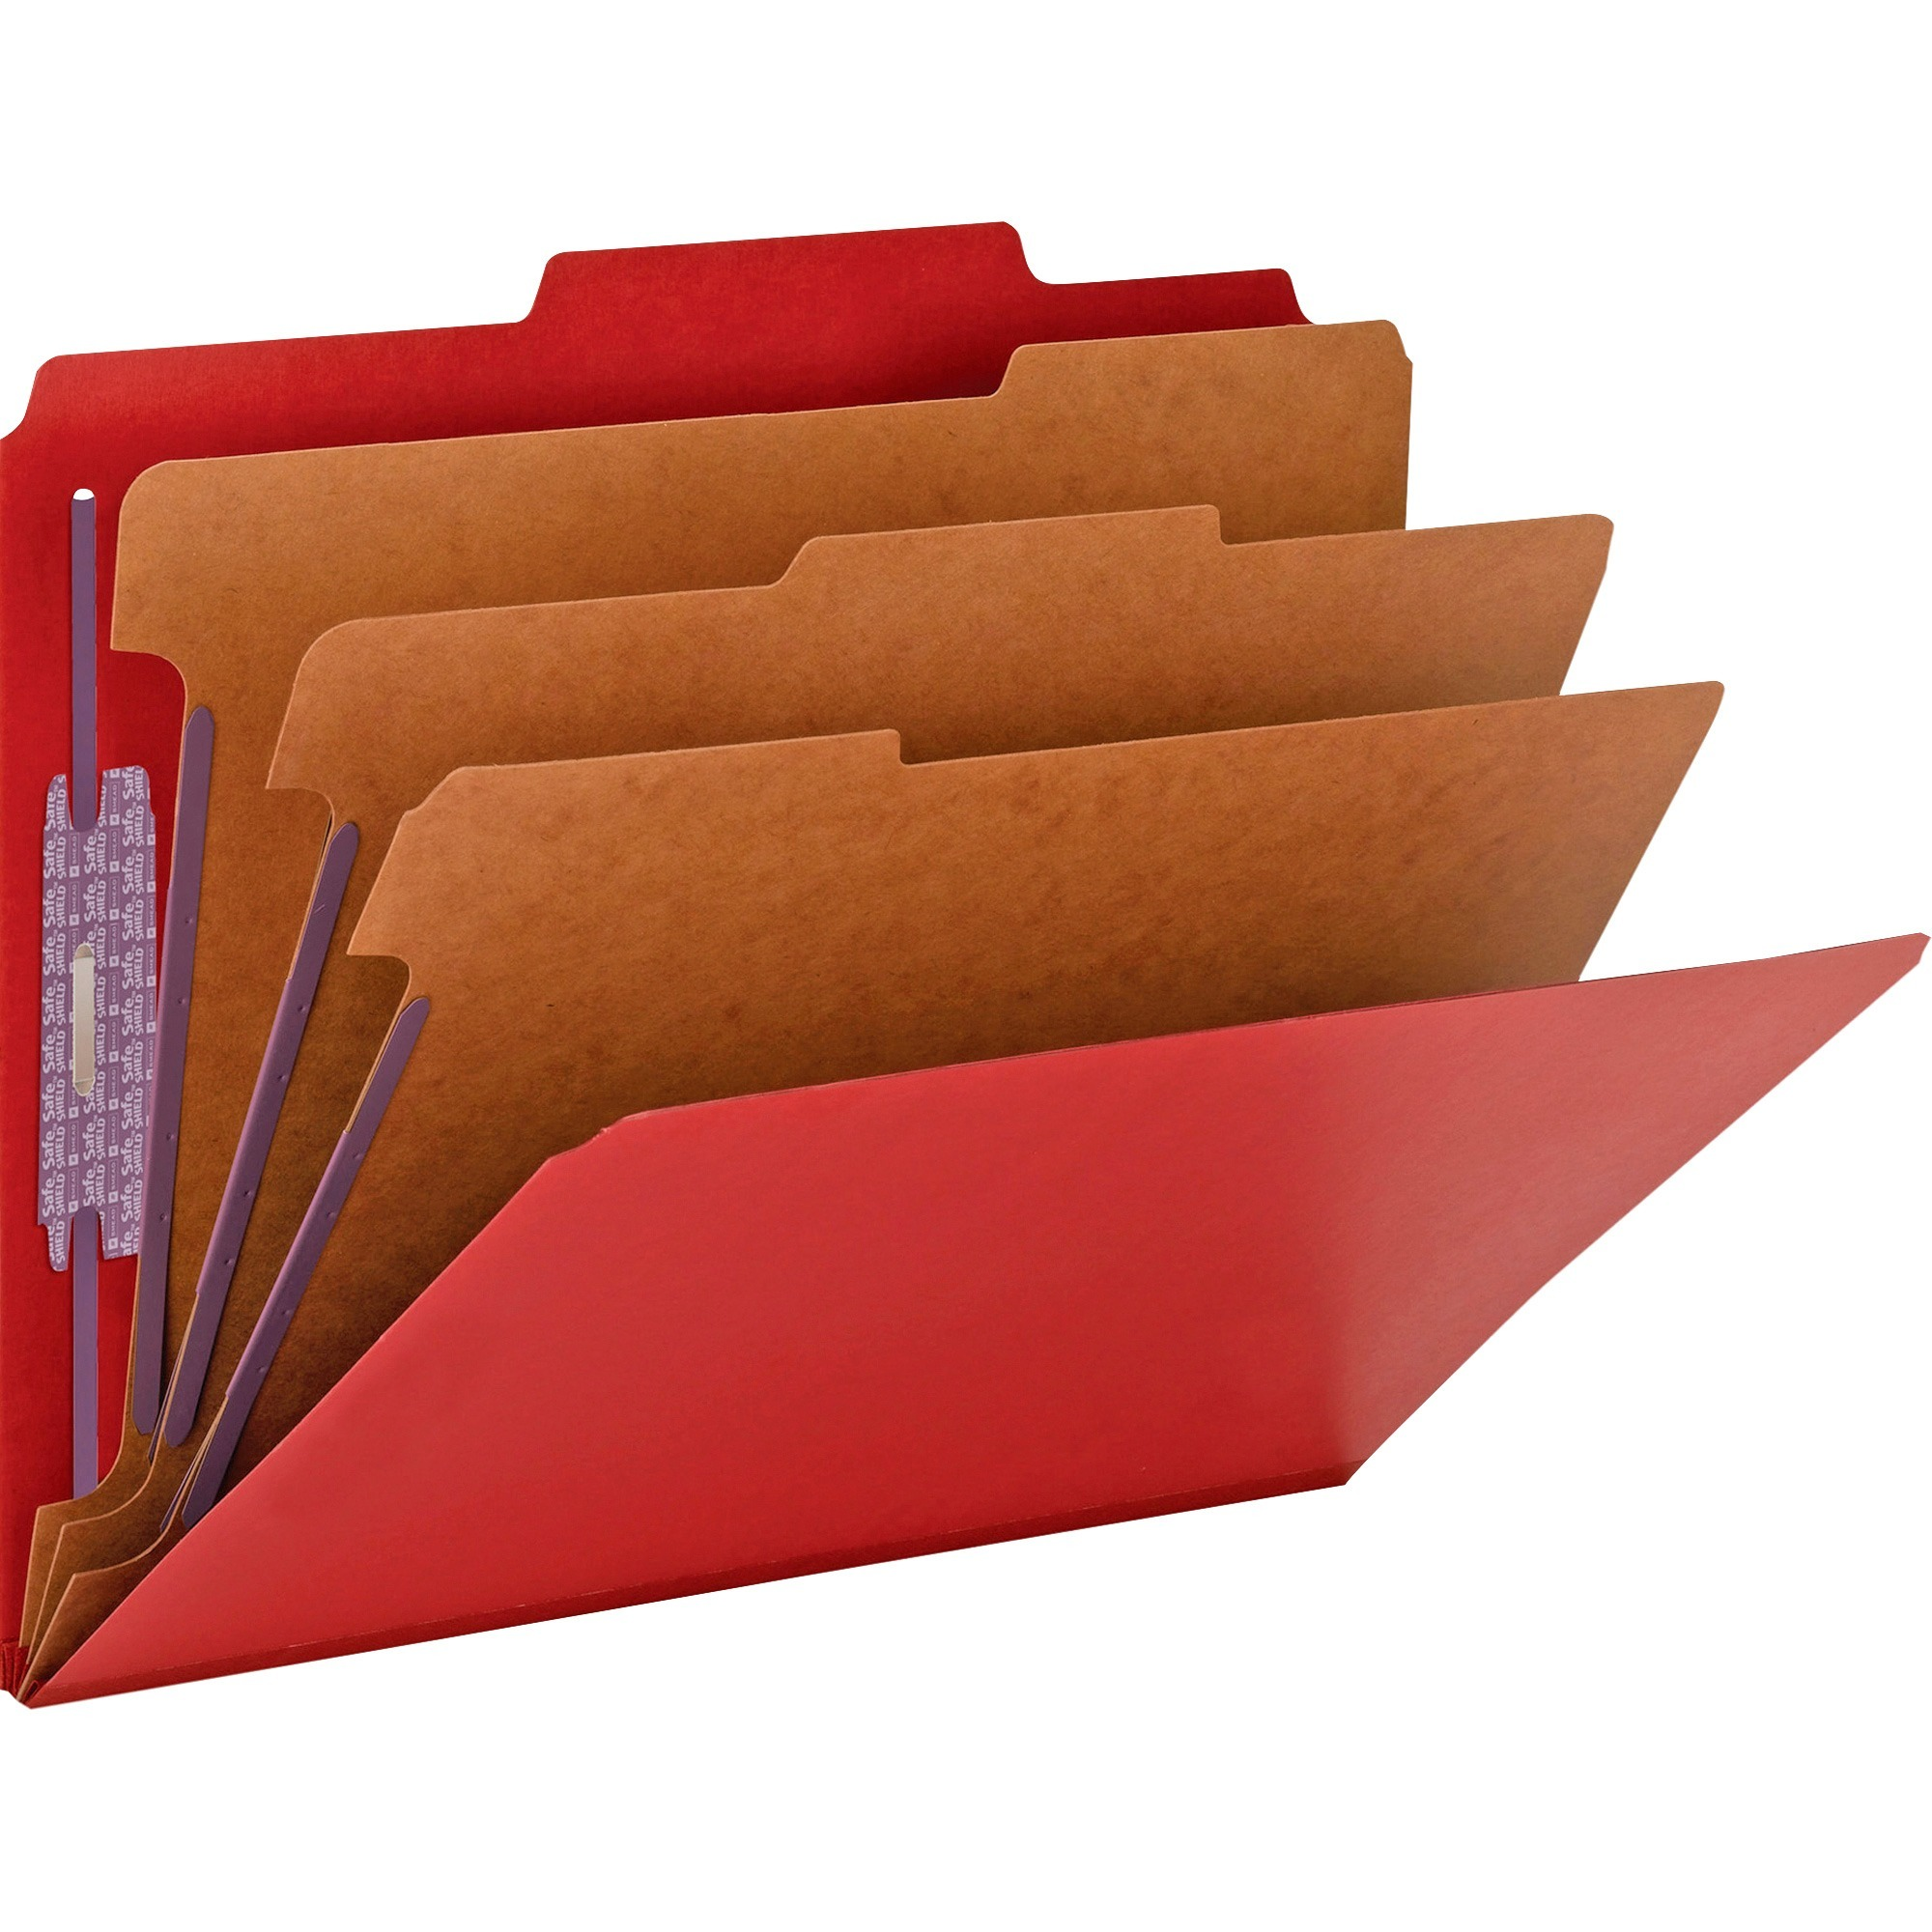 """Smead Pressboard Classification File Folder with SafeSHIELD® Fasteners, 3 Dividers, 3"""" Expansion, Letter Size, Bright Red, 10 each per Box (14095)"""